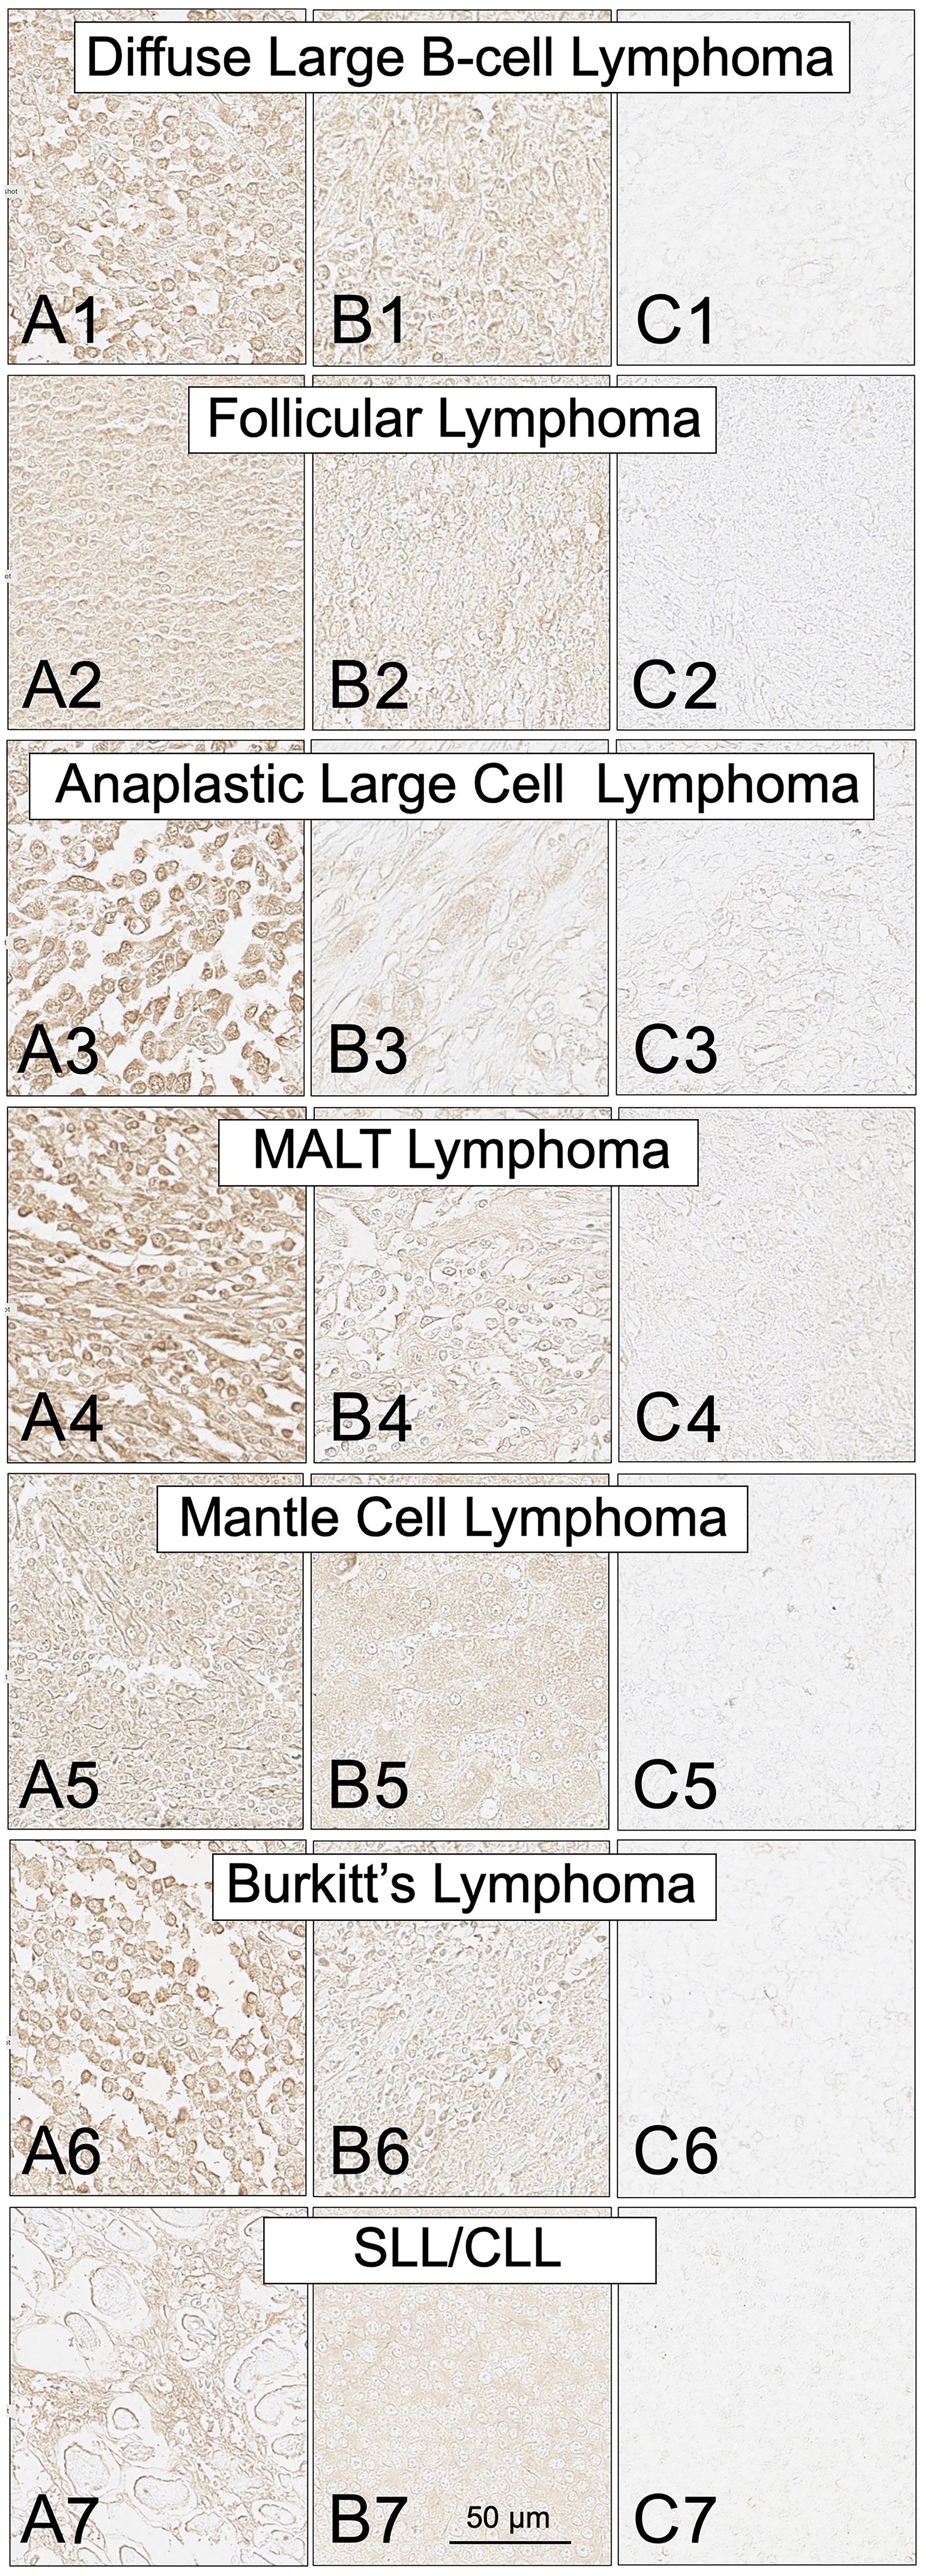 SH7129 staining of tumor biopsy sections from seven subtypes of non-Hodgkin's lymphoma.